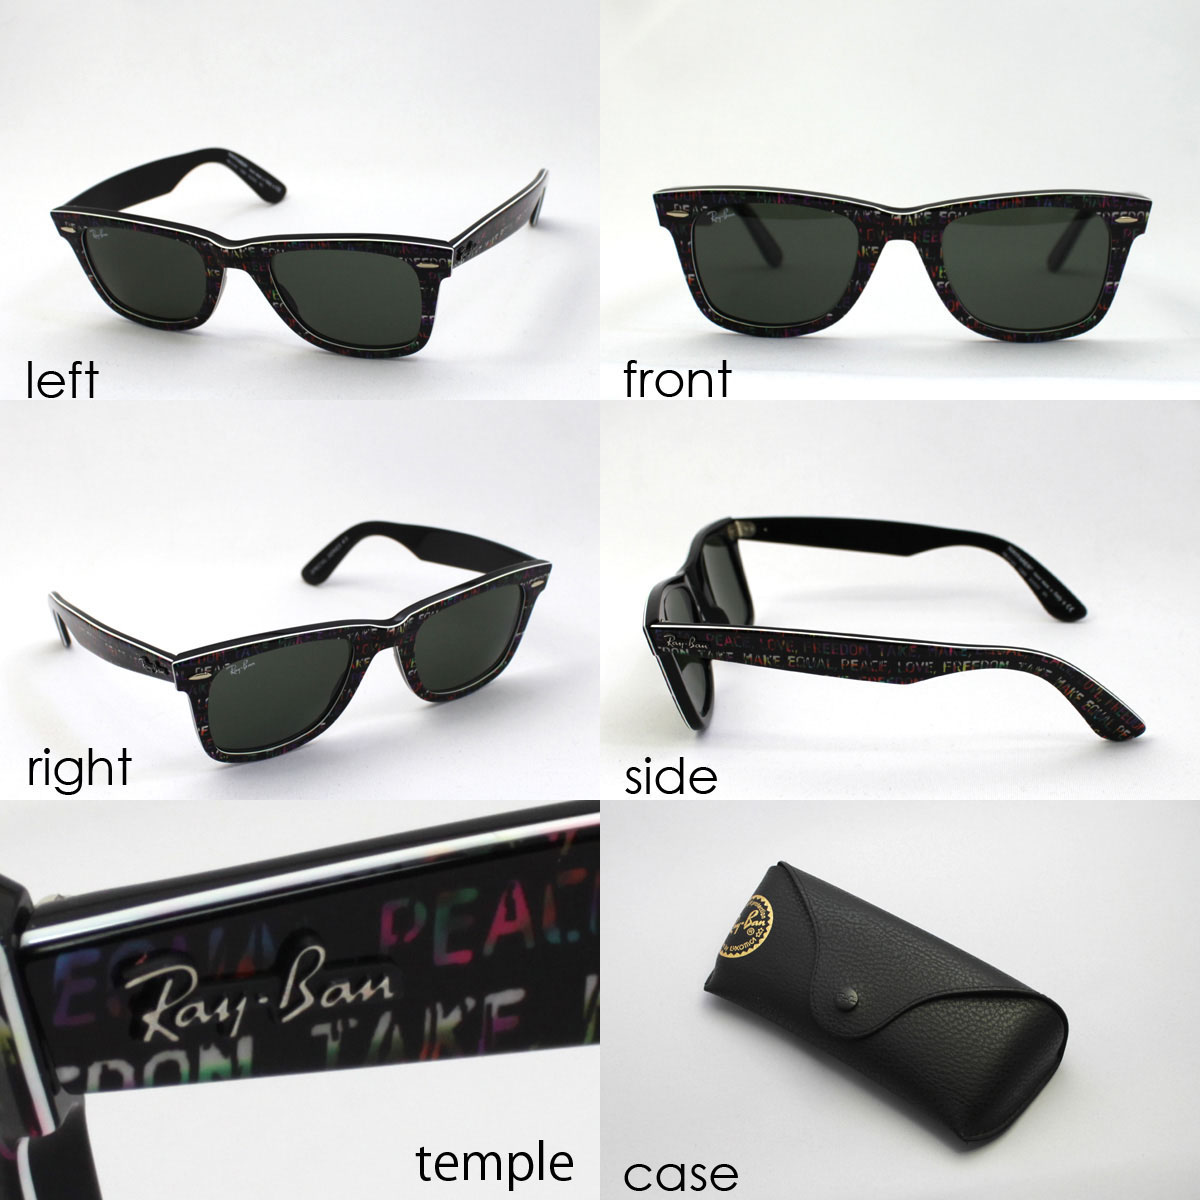 8dcbaec1667 24 7 minimum 6 hours delivered regular Ray ban domestic maximum 2066 model  assortment Minami Aoyama in Tokyo stores RB2140 1089 Ray Ban sunglasses  RayBan ...